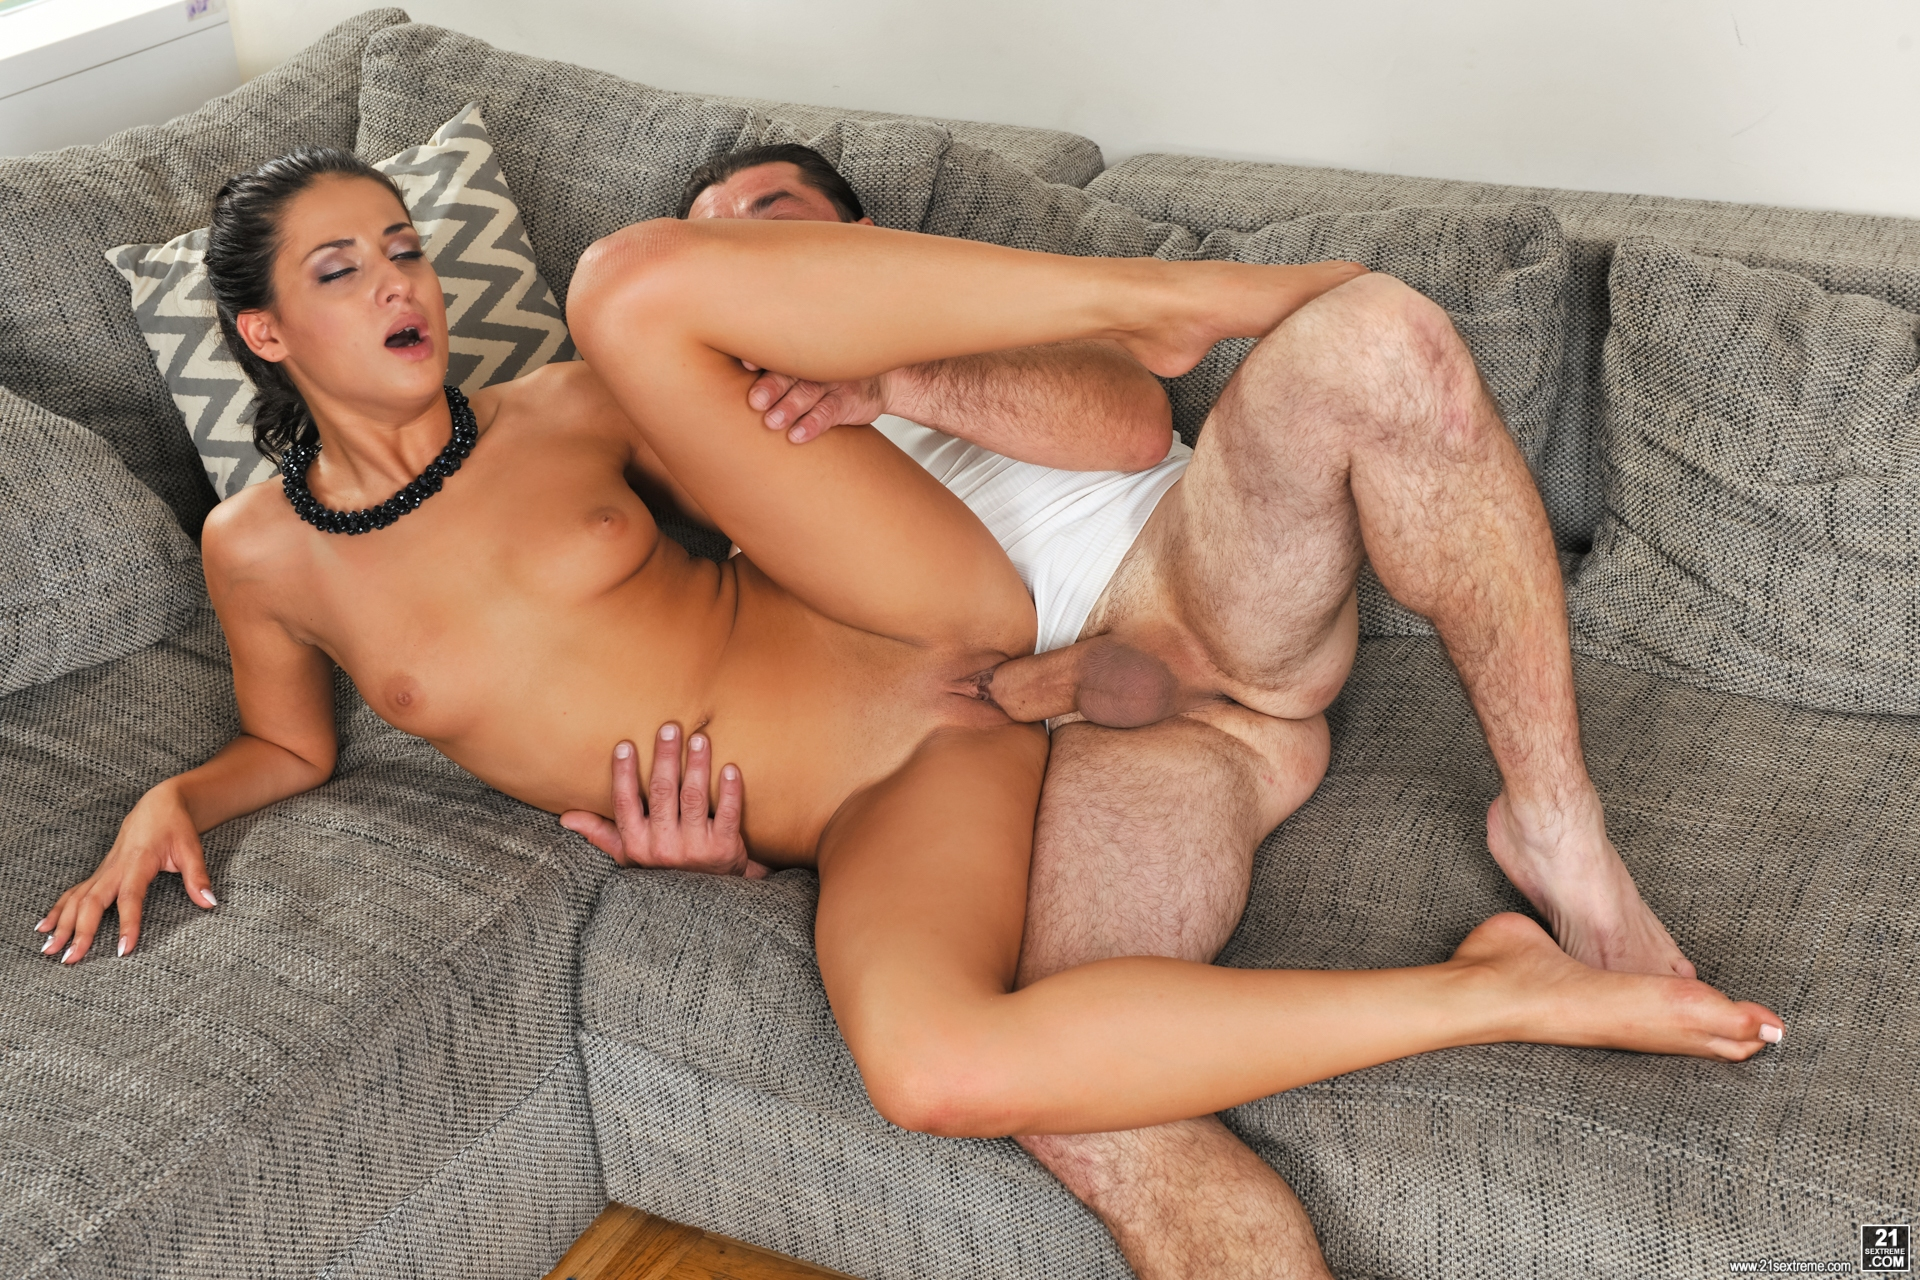 Latina Girl White Guy  Most Sexy Porn  Free Hd  4K Photos-2090